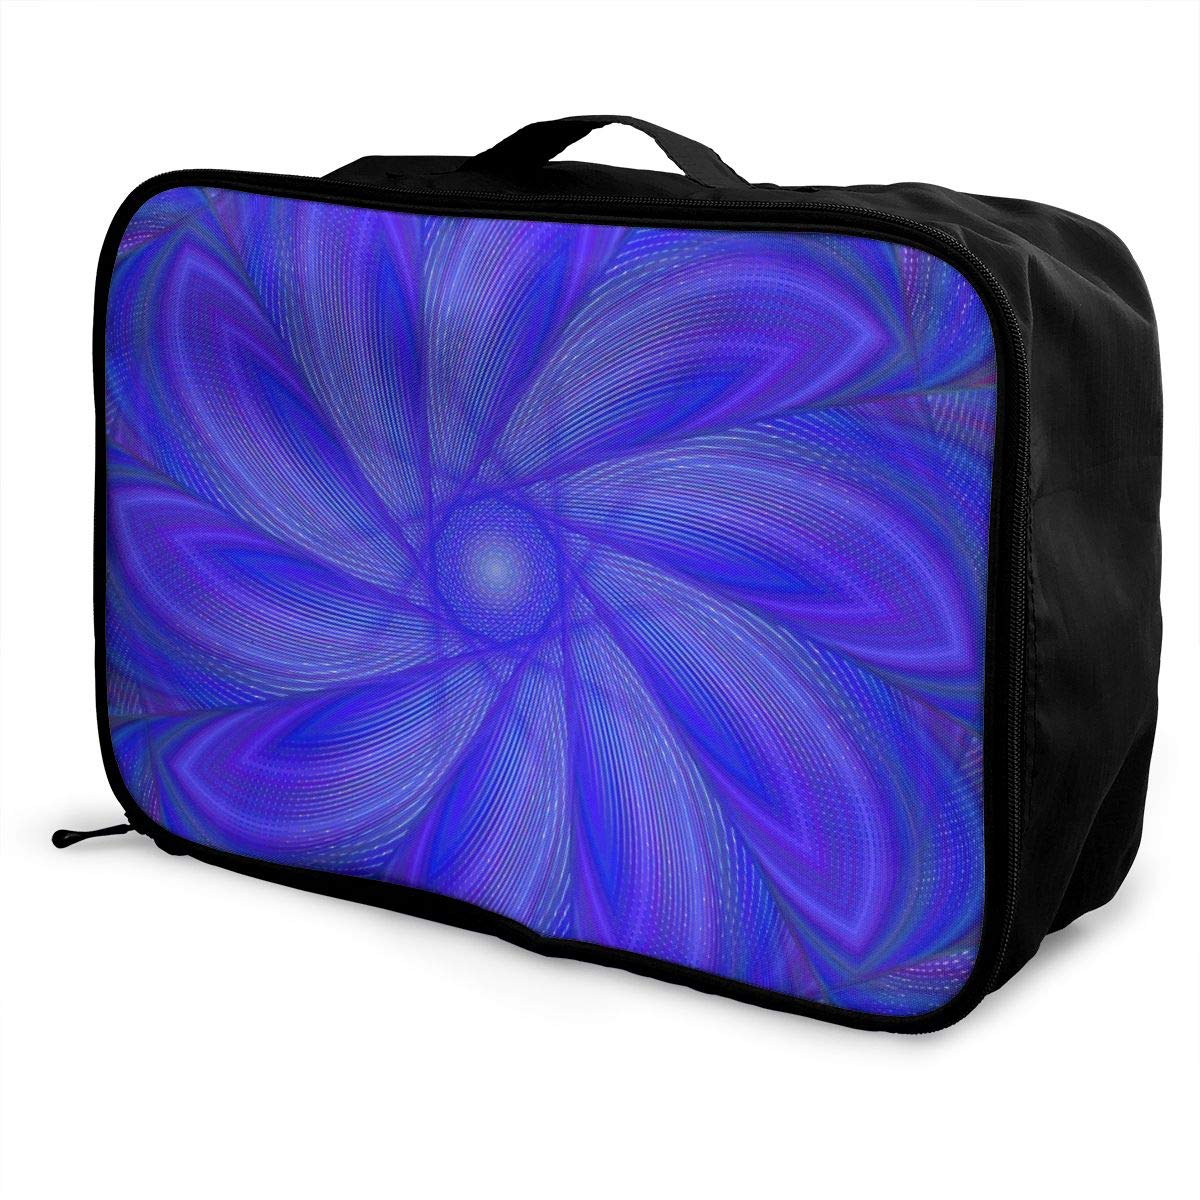 Visual Art Point Colorful Travel Lightweight Waterproof Foldable Storage Carry Luggage Large Capacity Portable Luggage Bag Duffel Bag